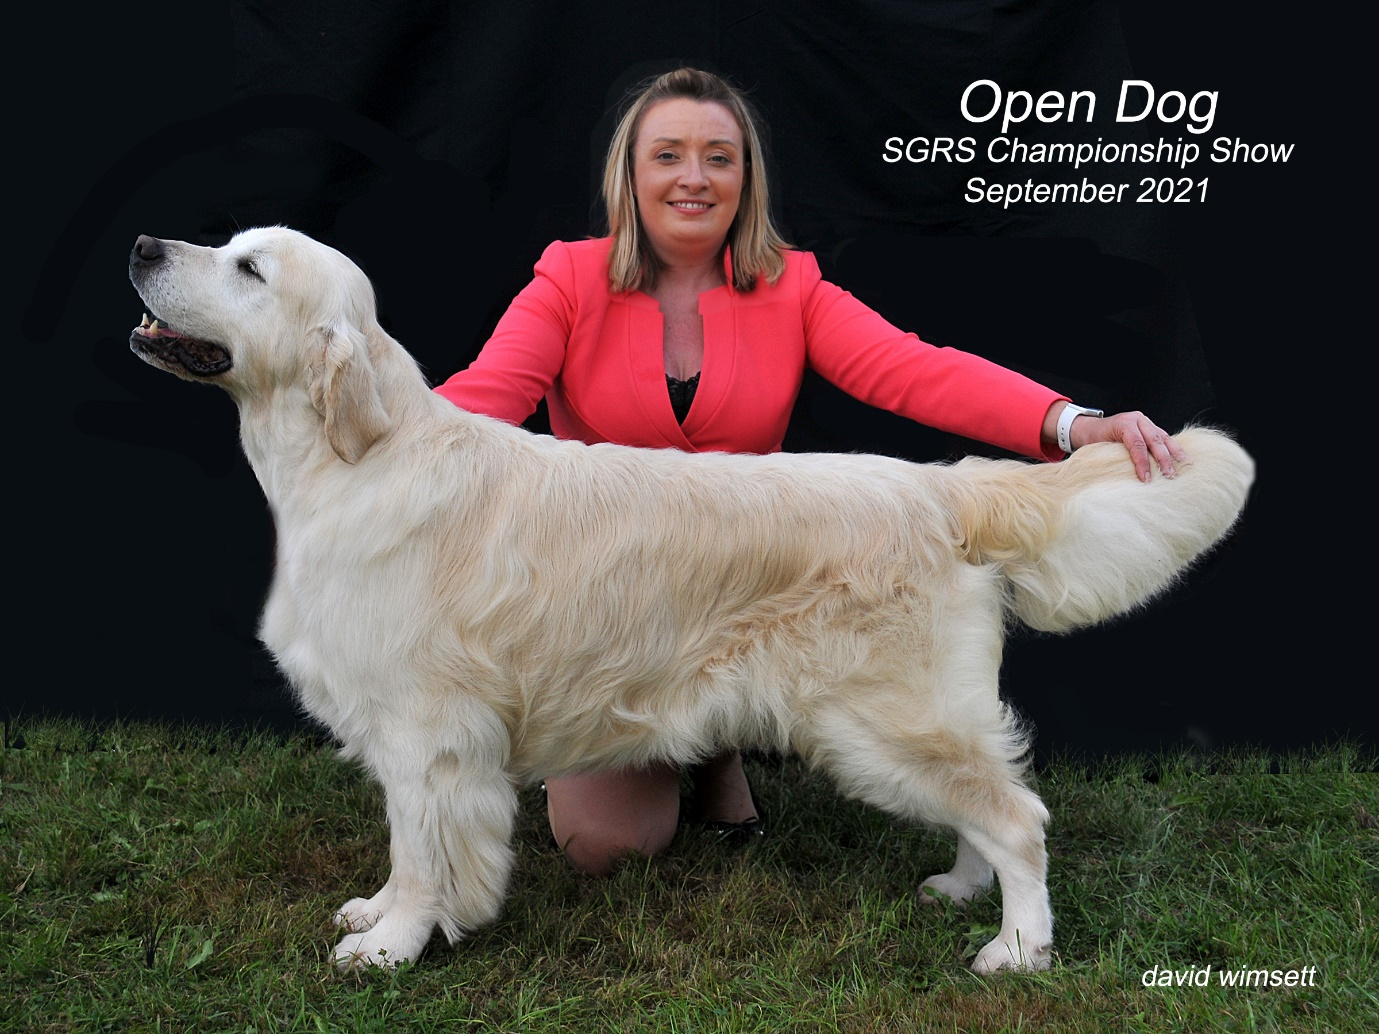 A person kneeling next to a dog Description automatically generated with low confidence